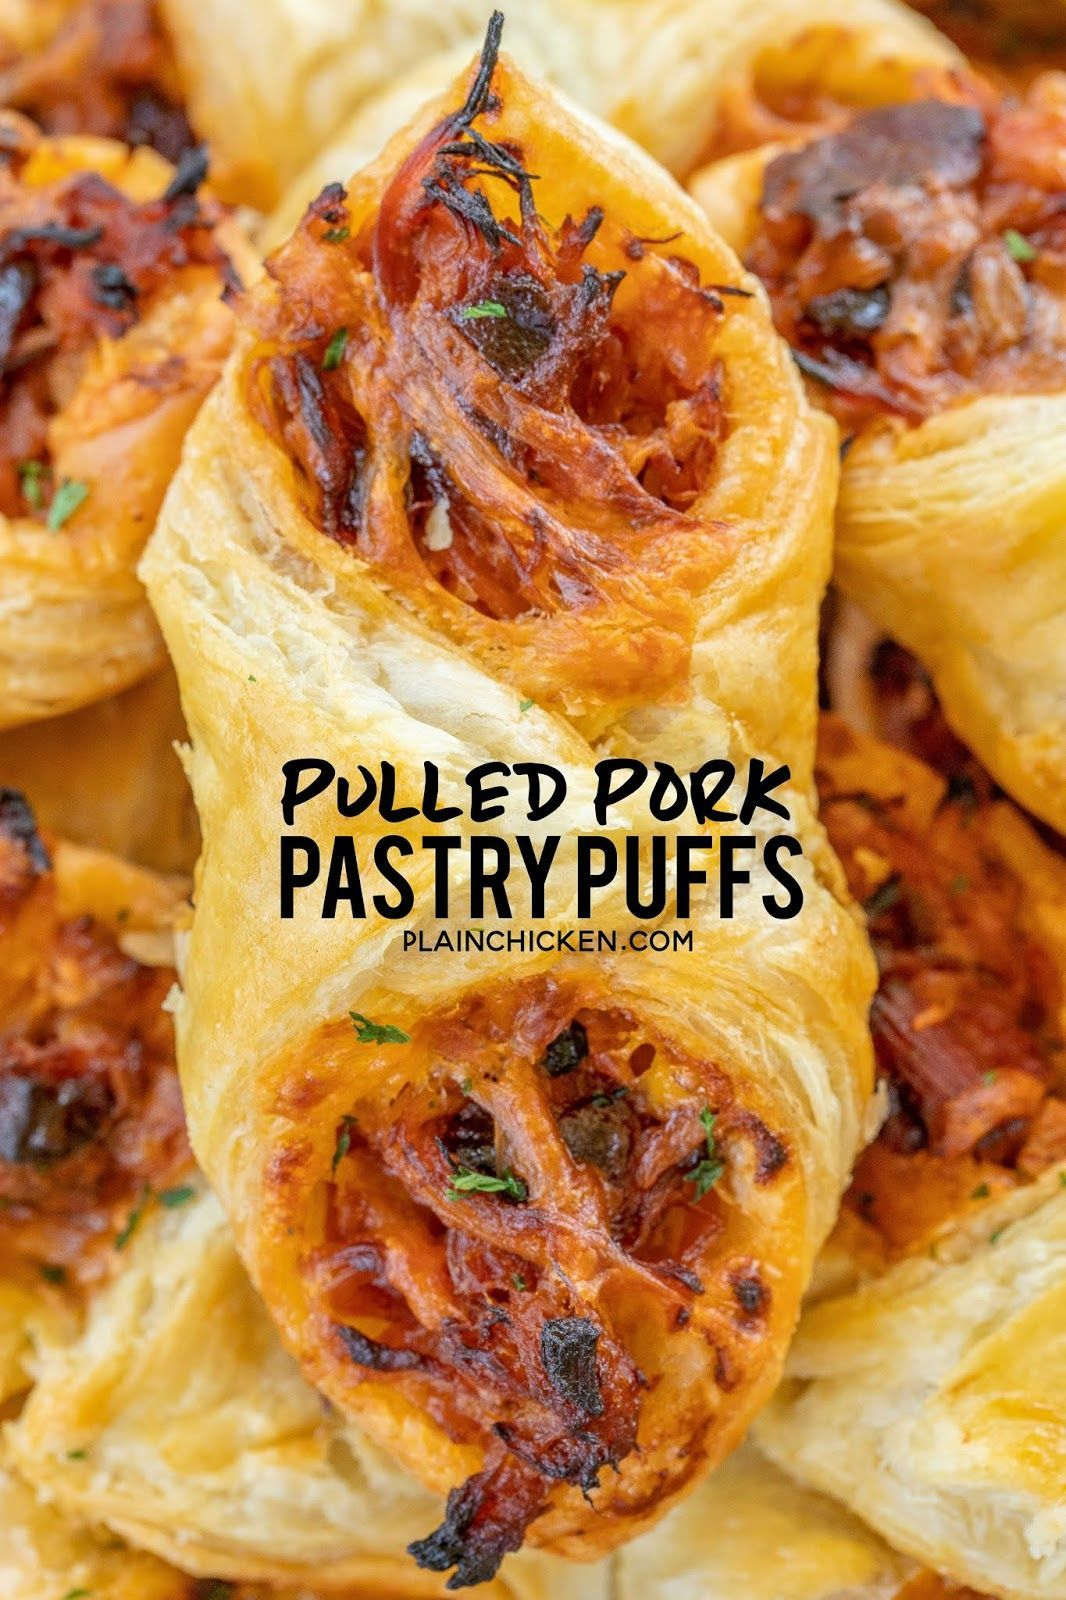 Pulled Pork Pastry Puffs – Fußball Freitag - Pastry